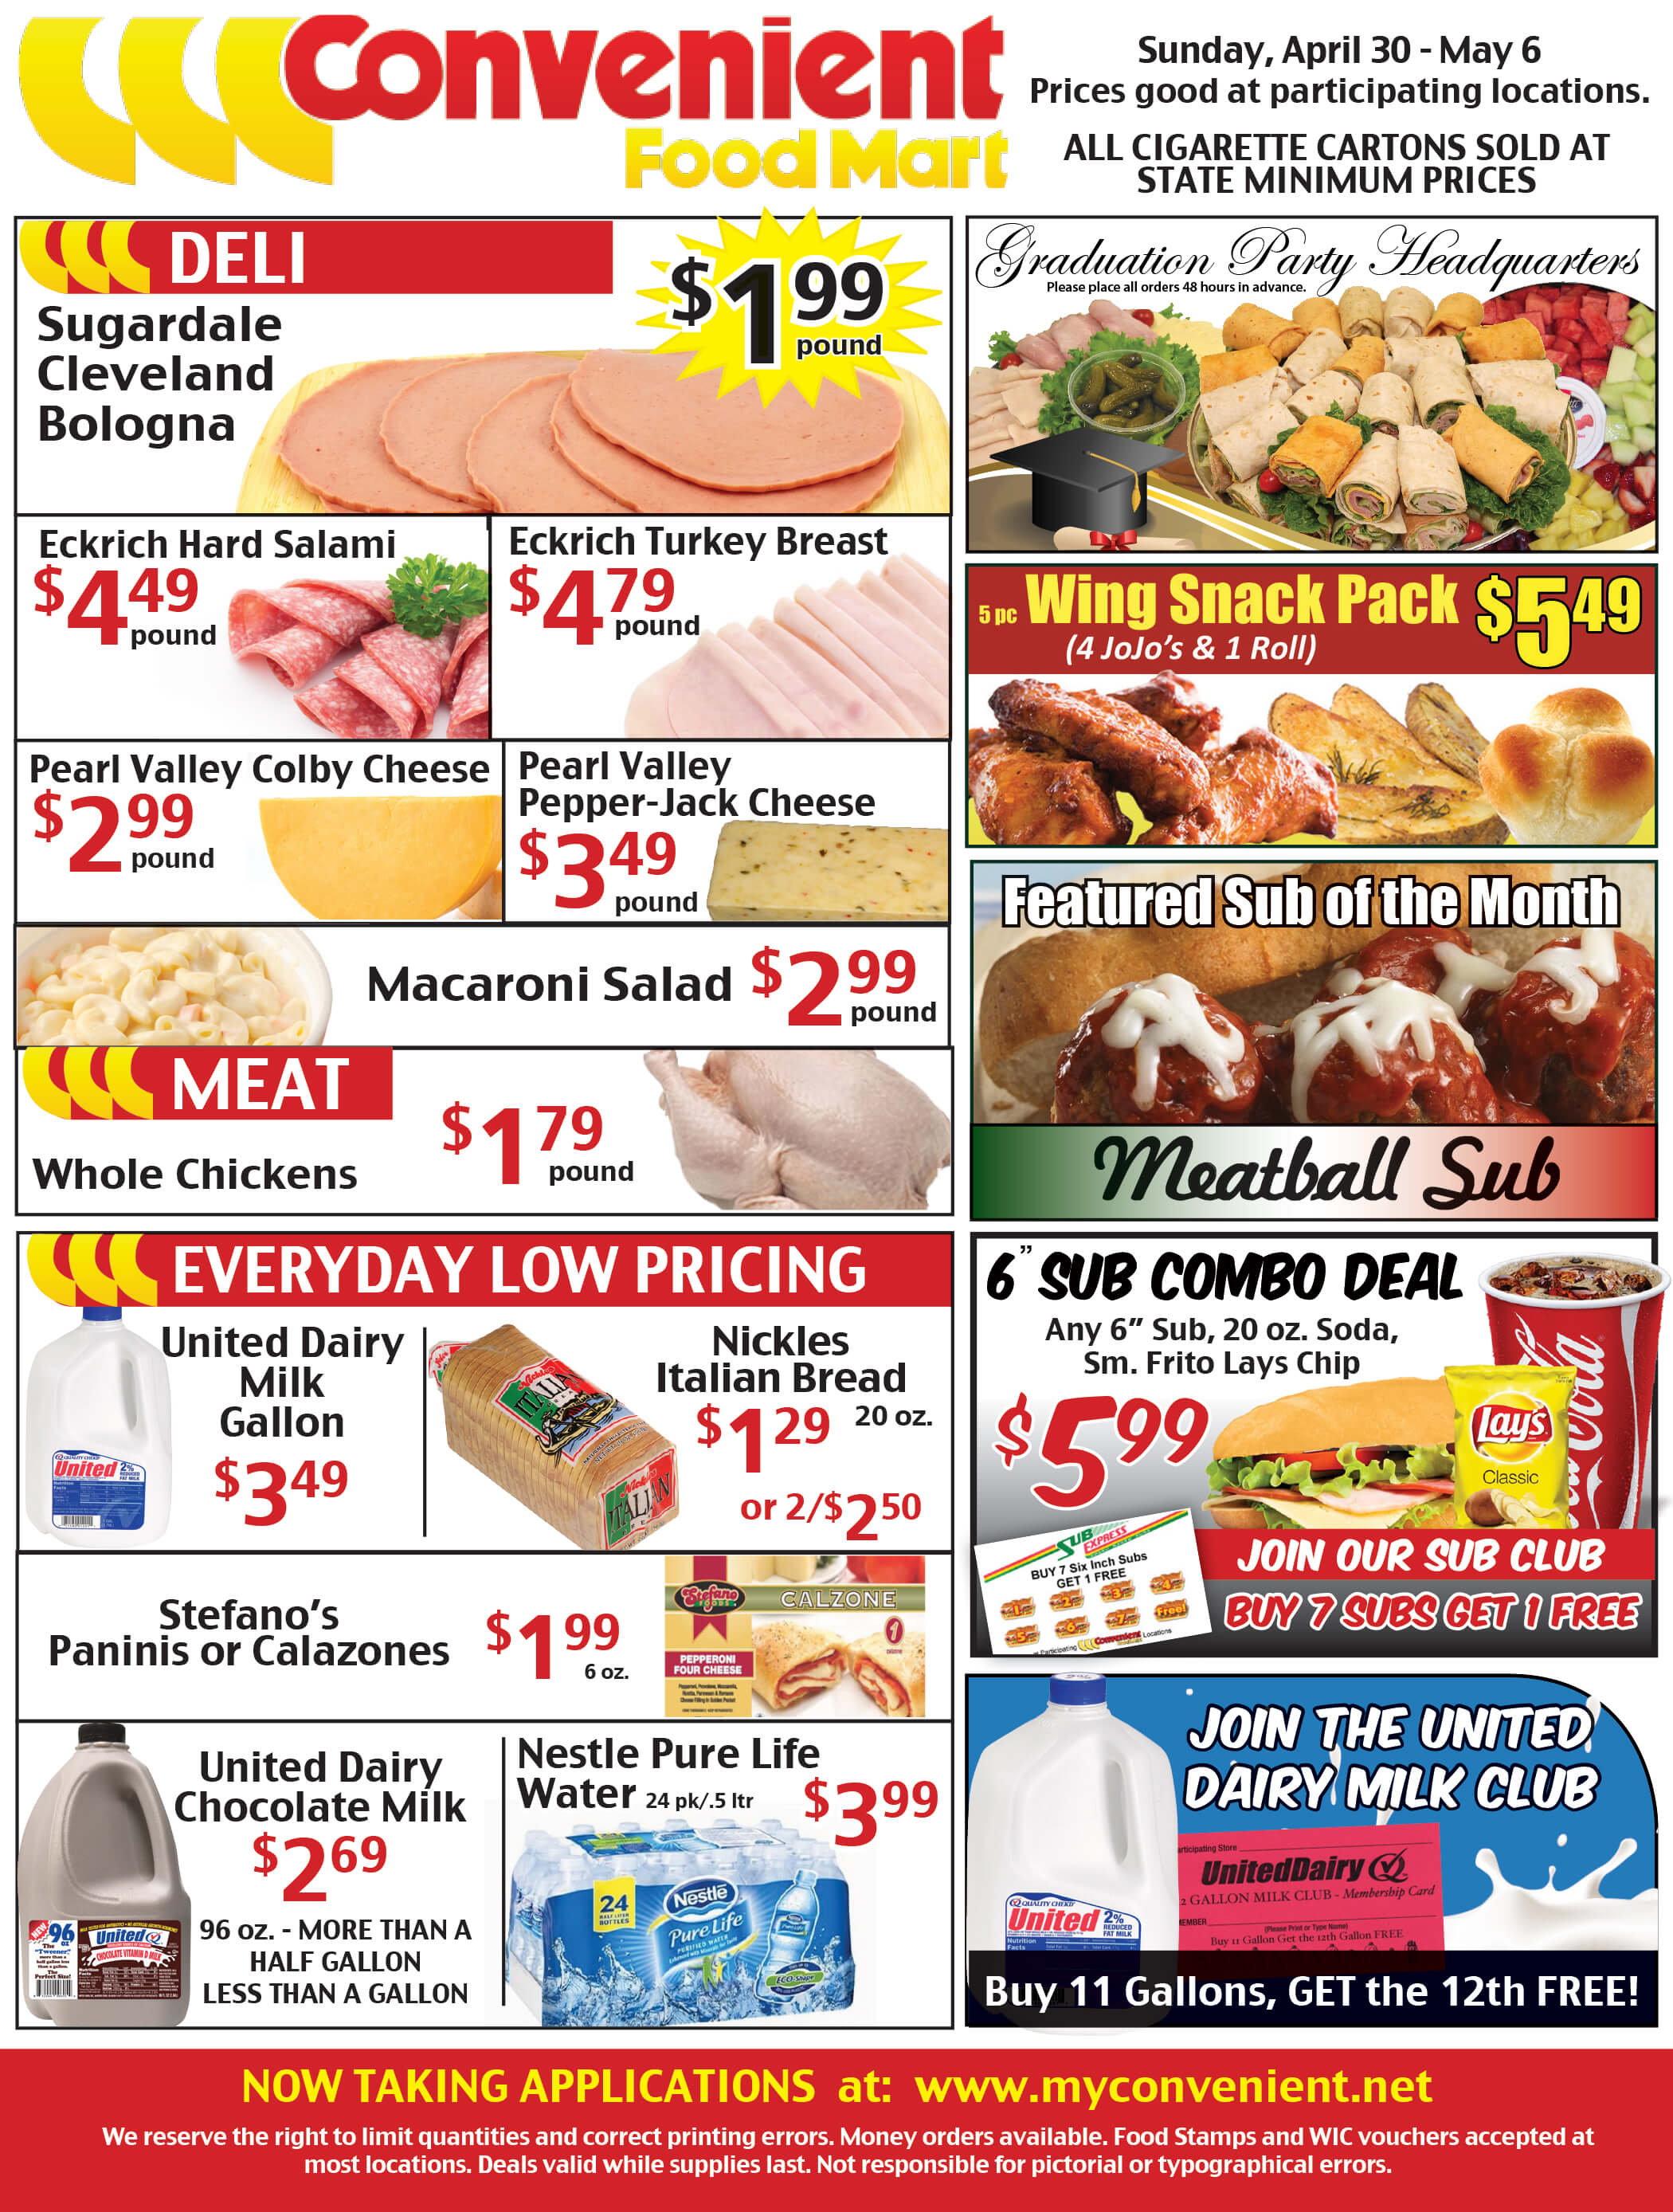 Convenient Food Mart Weekly Ad for April 30 to May 6